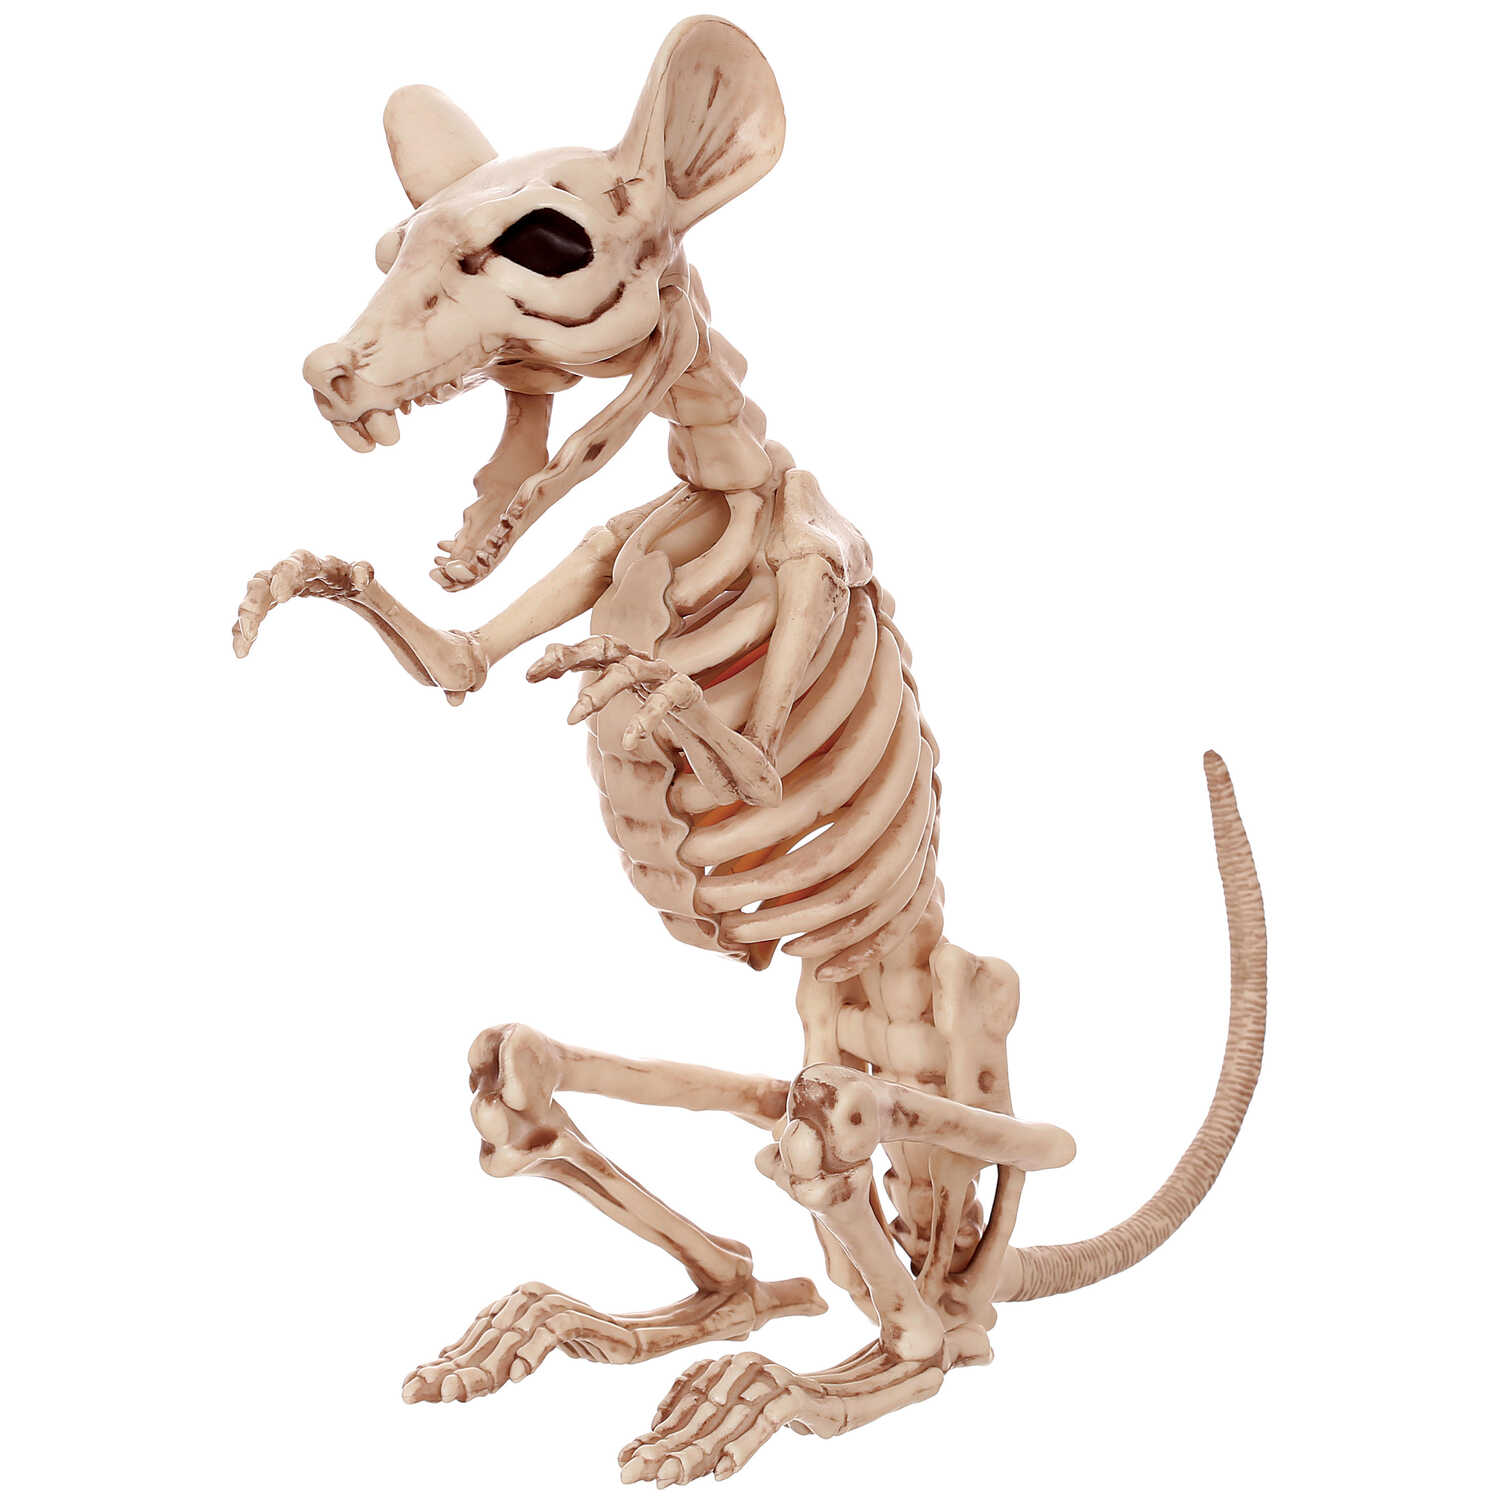 Seasons USA  Skeleton Rat  Halloween Decoration  11.5 in. H x 8  L x 4.5 in. W 1 each